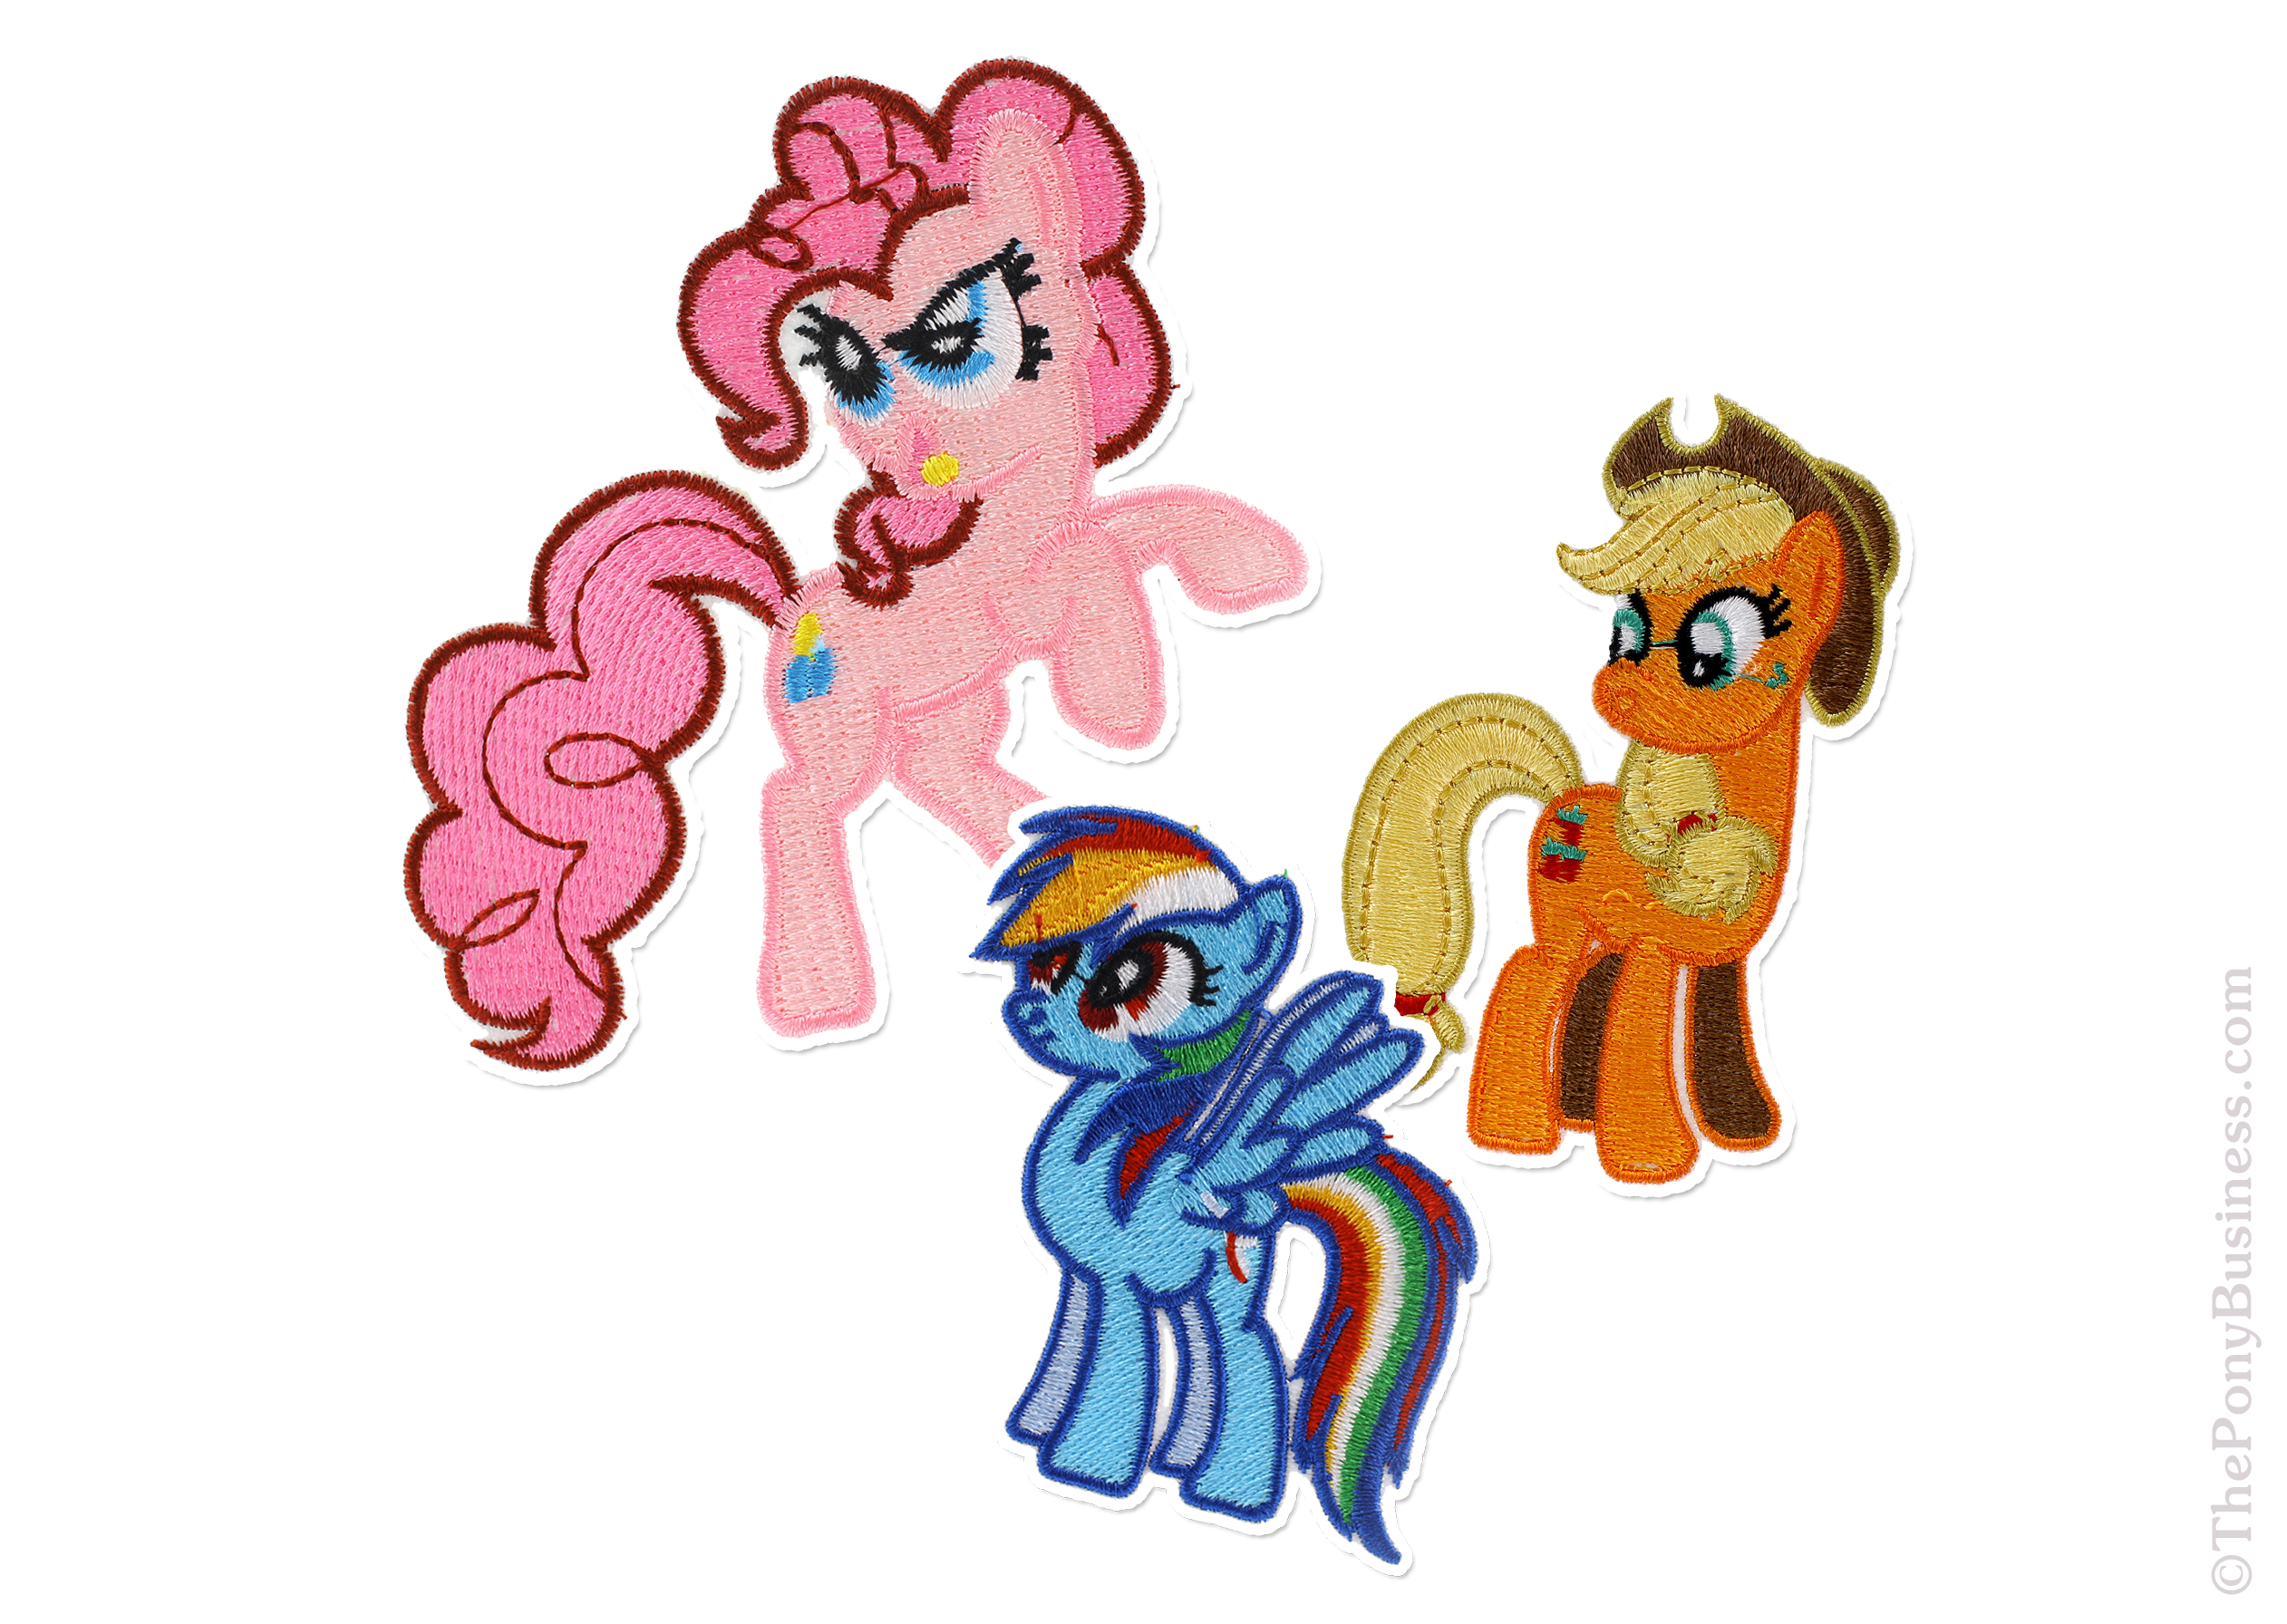 Mane 6 Embroidered Patches Theponybusiness Luggage Tag Pinkie Pie 168 Featuring Fluttershy